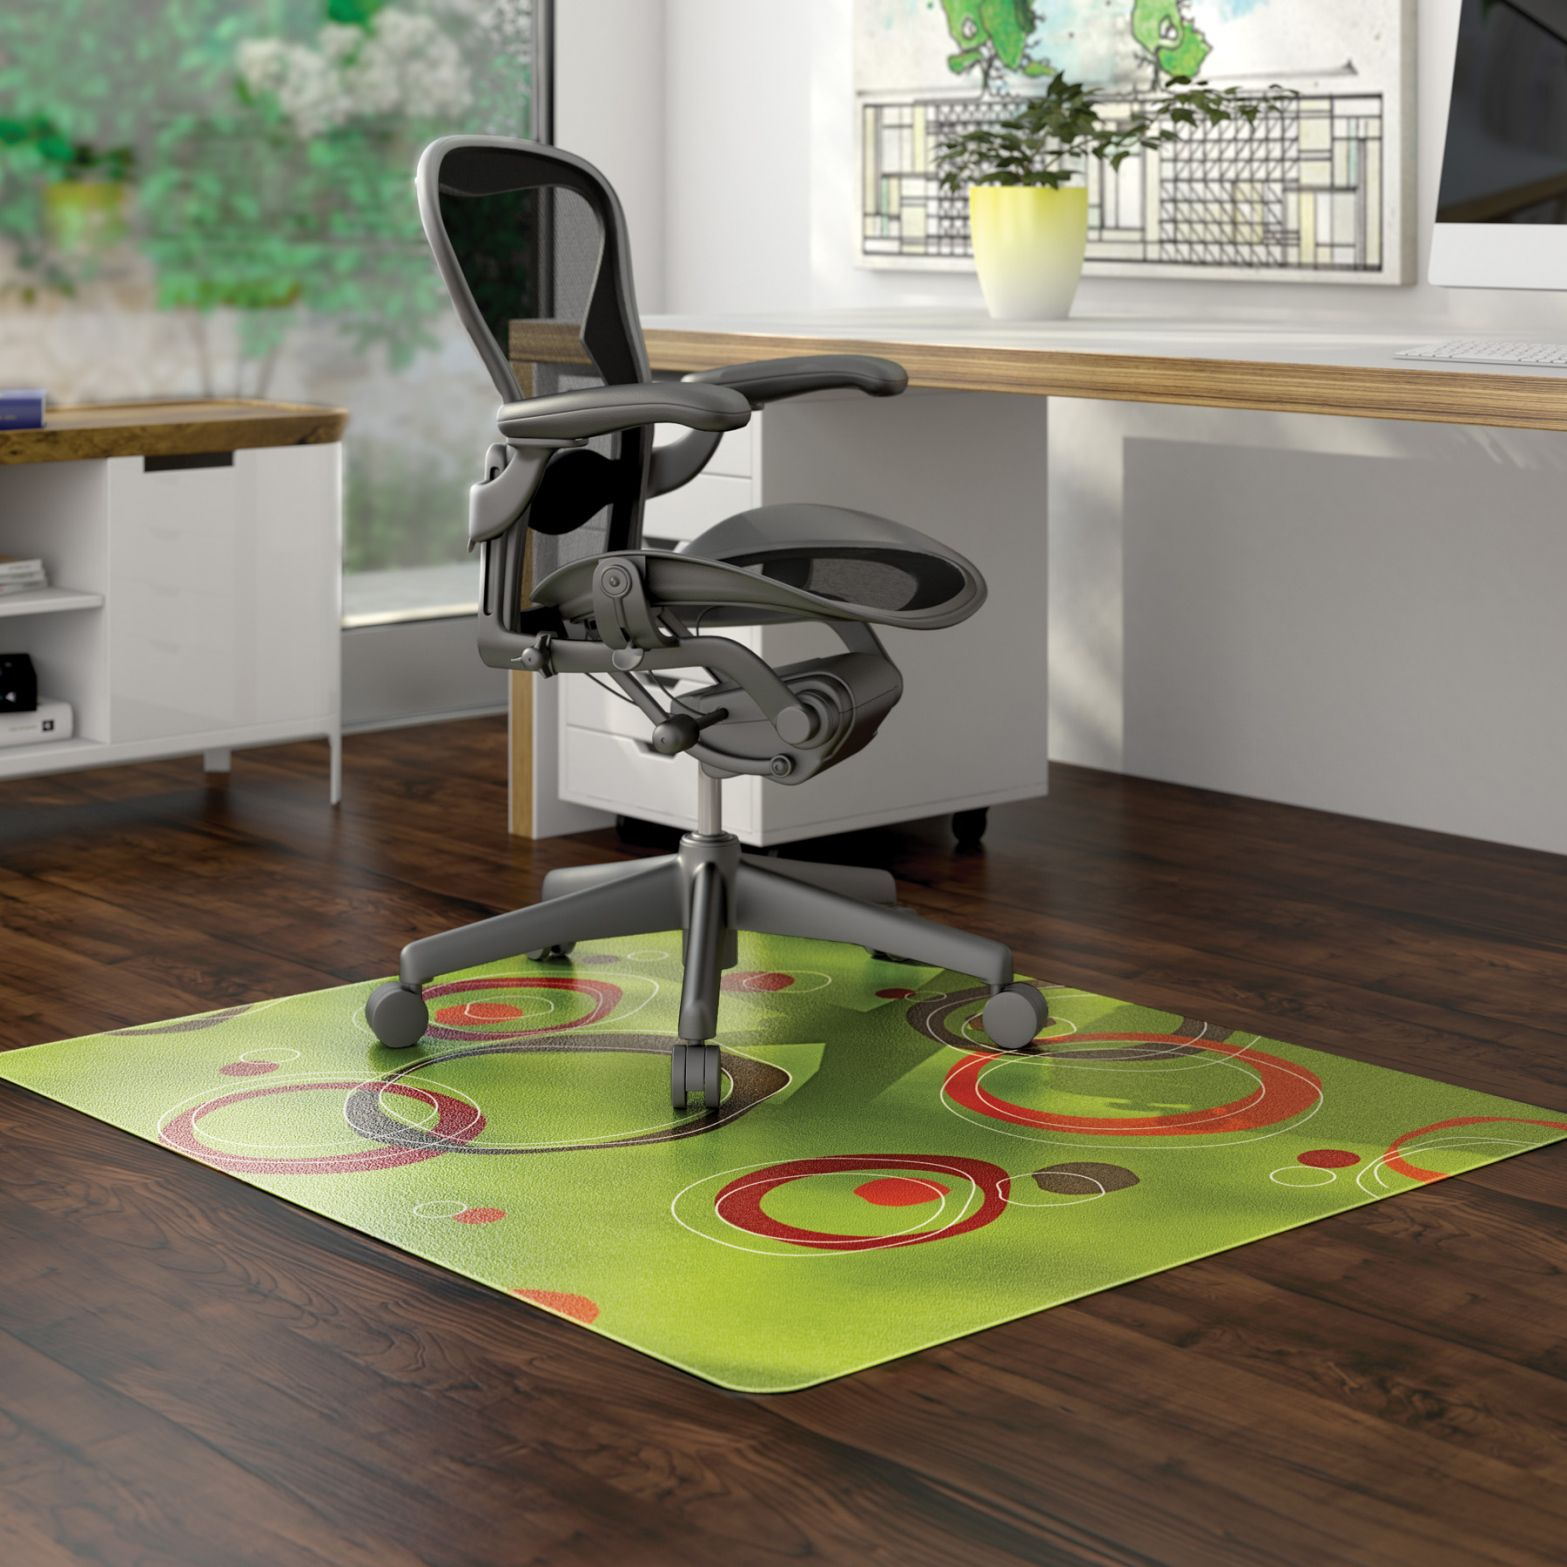 20 Plastic Office Chair Mat Ashley Furniture Home Check More At Http